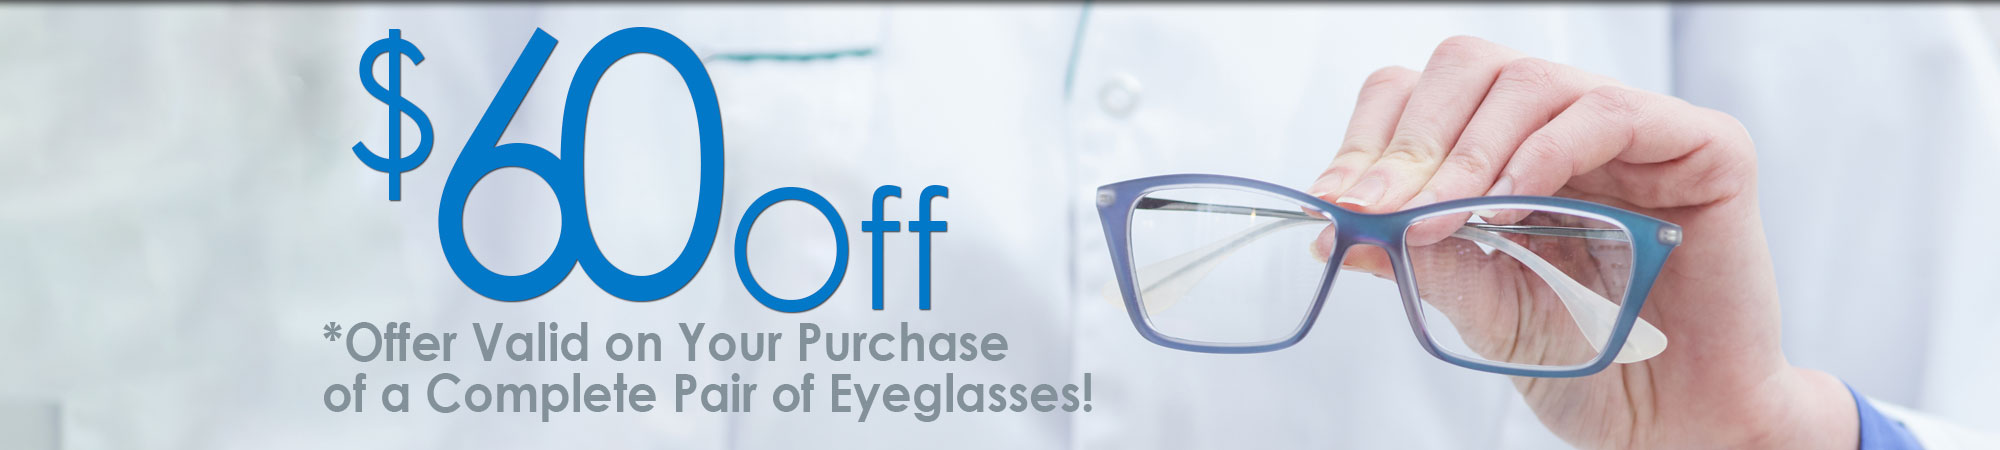 $60 Off Offer Valid on Your Purchase of a Complete Pair of Eyeglasses